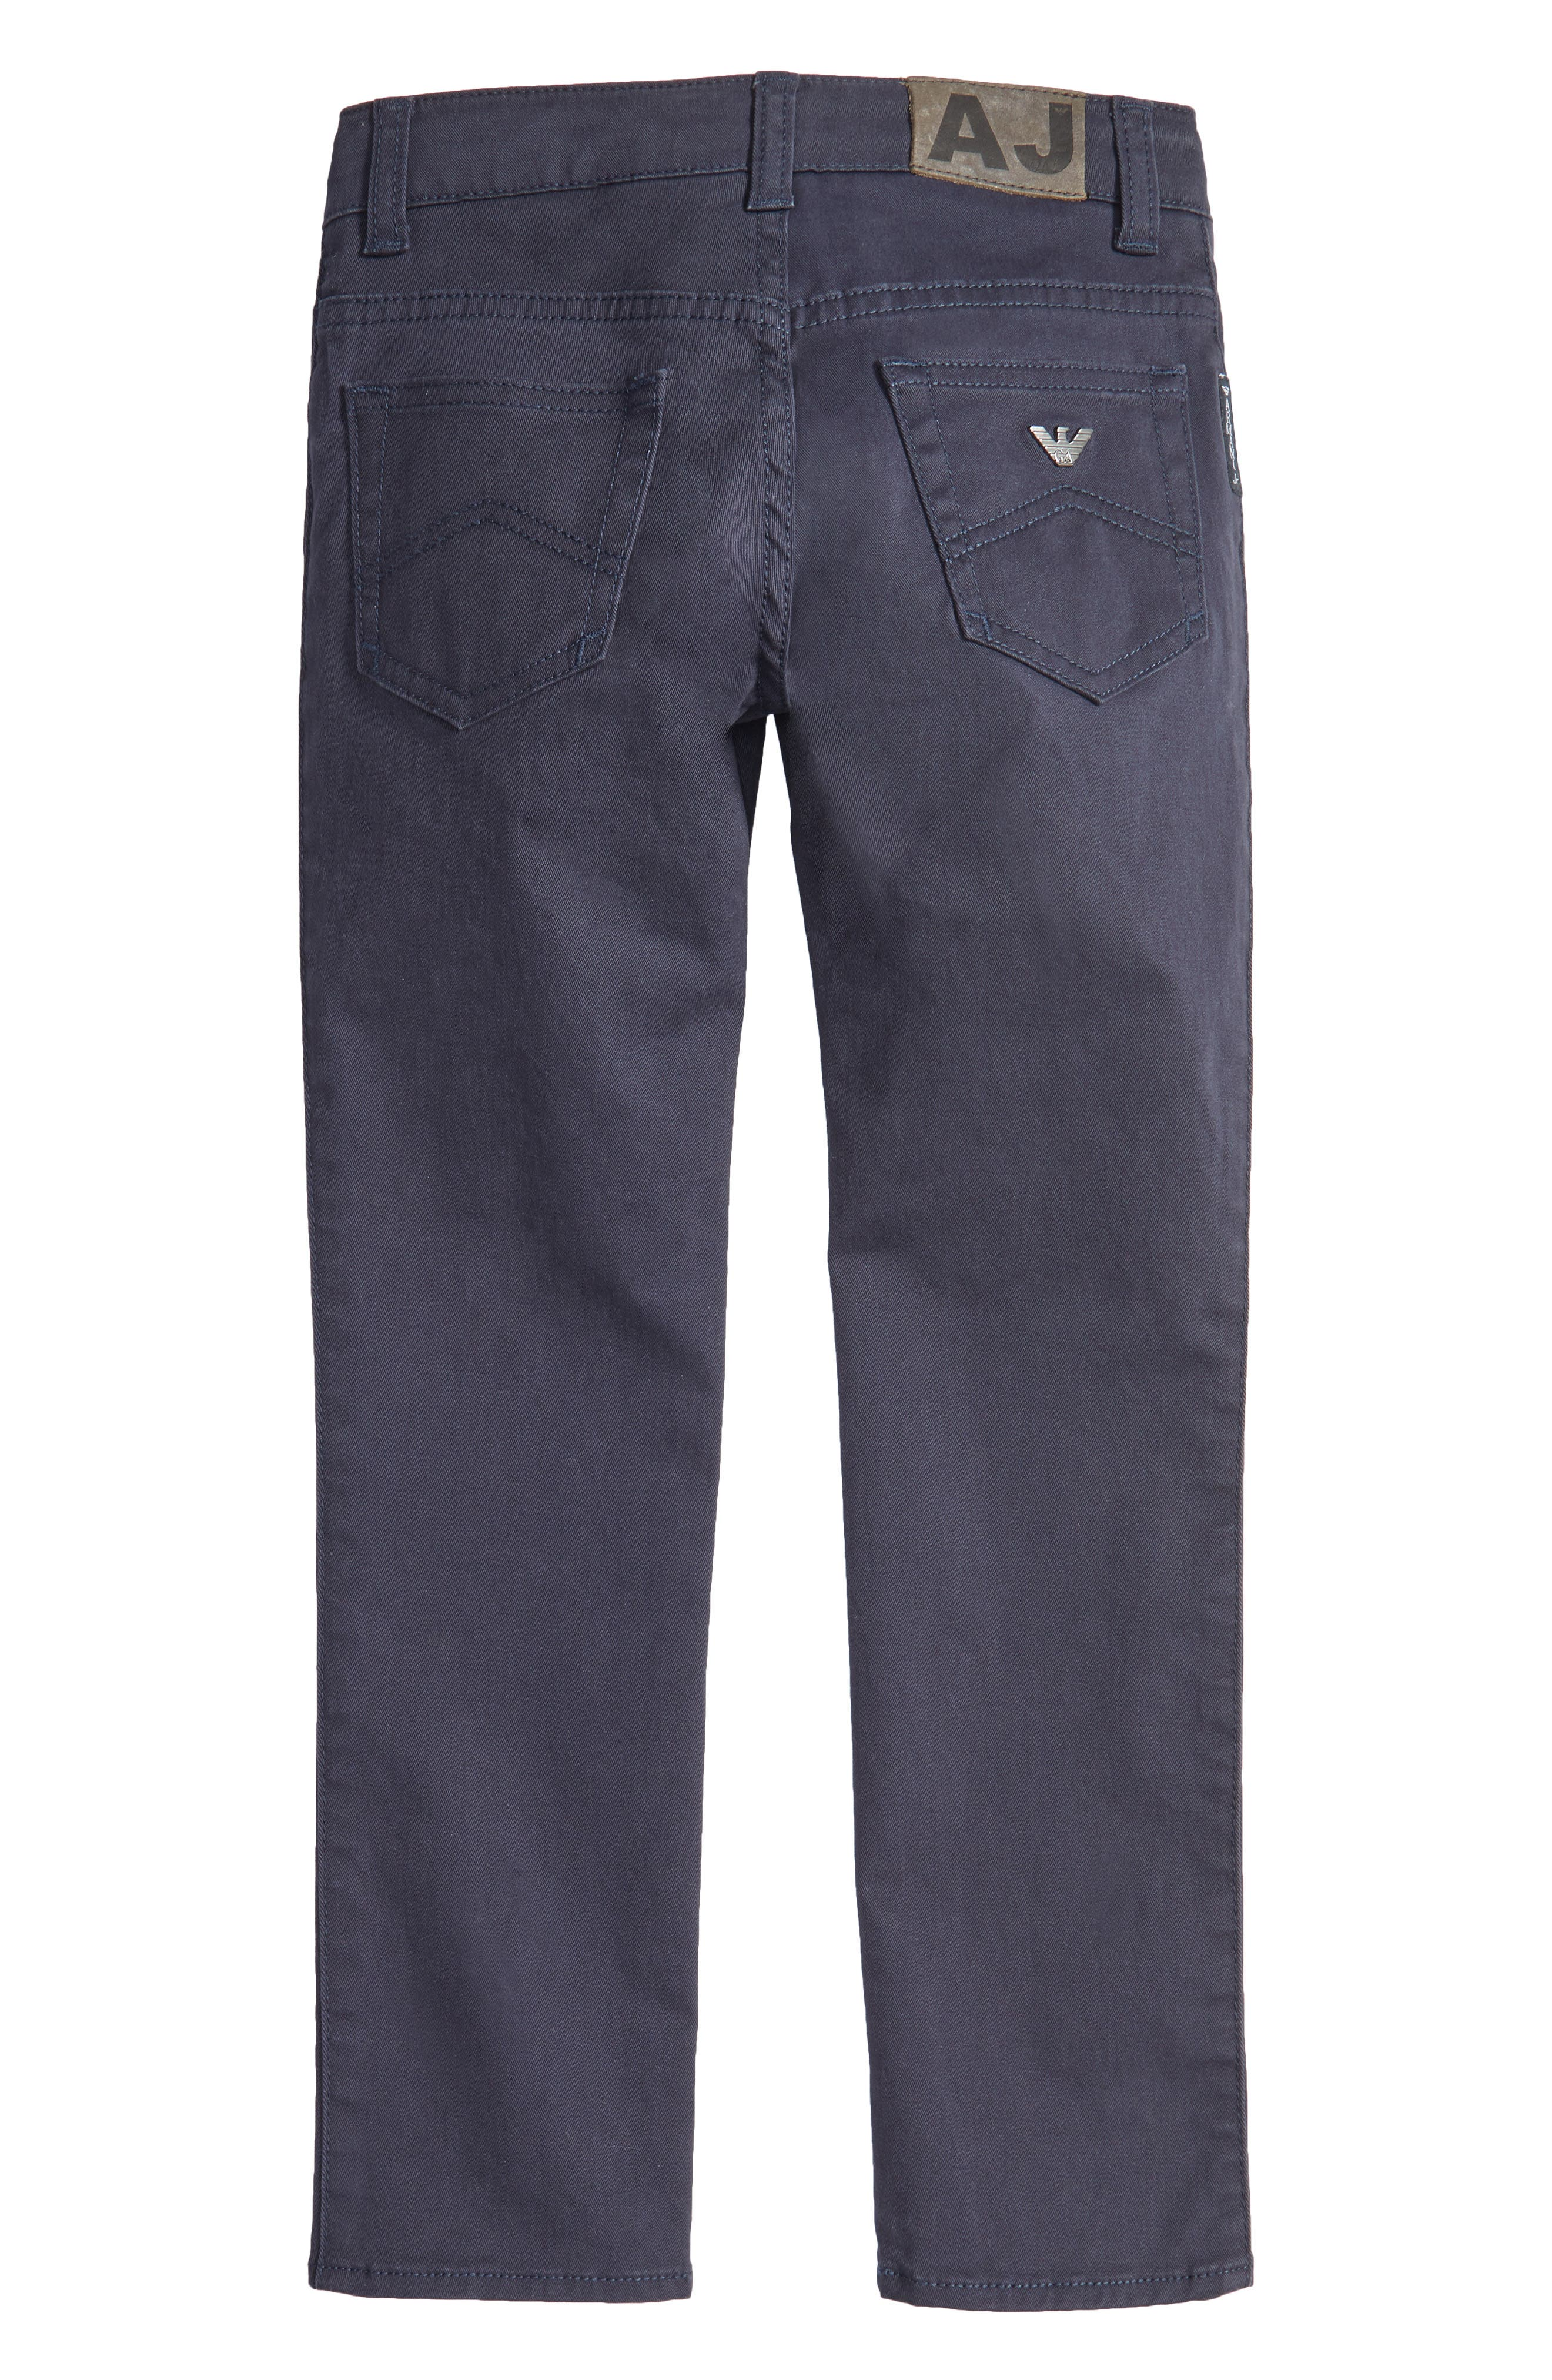 Alternate Image 2  - Armani Junior Stretch Cotton Chino Pants (Little Boys & Big Boys)